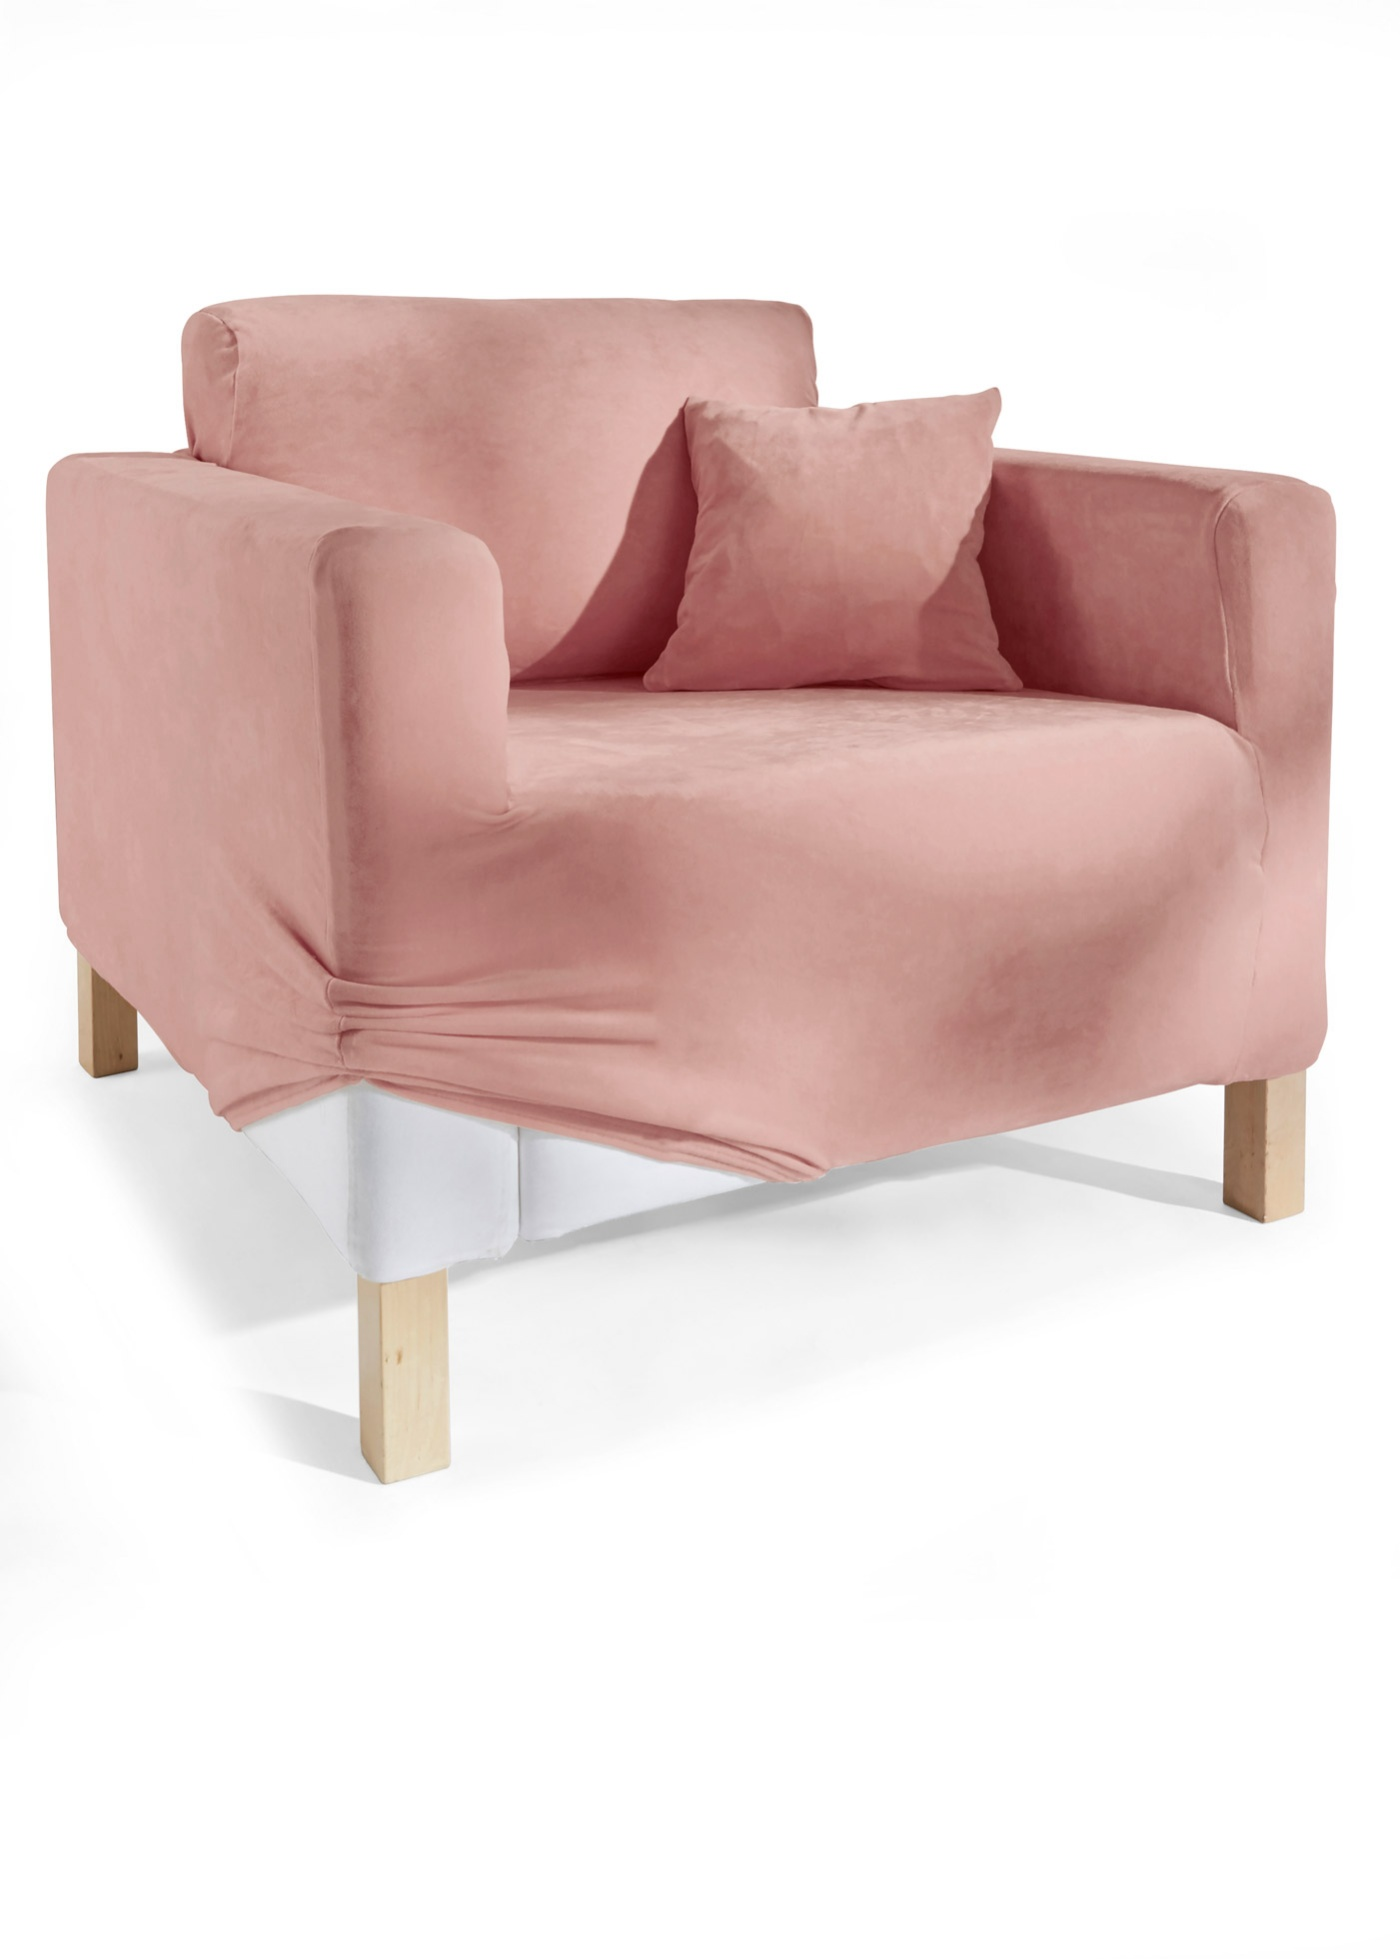 Copridivano Tina (rosa) - bpc living bonprix collection